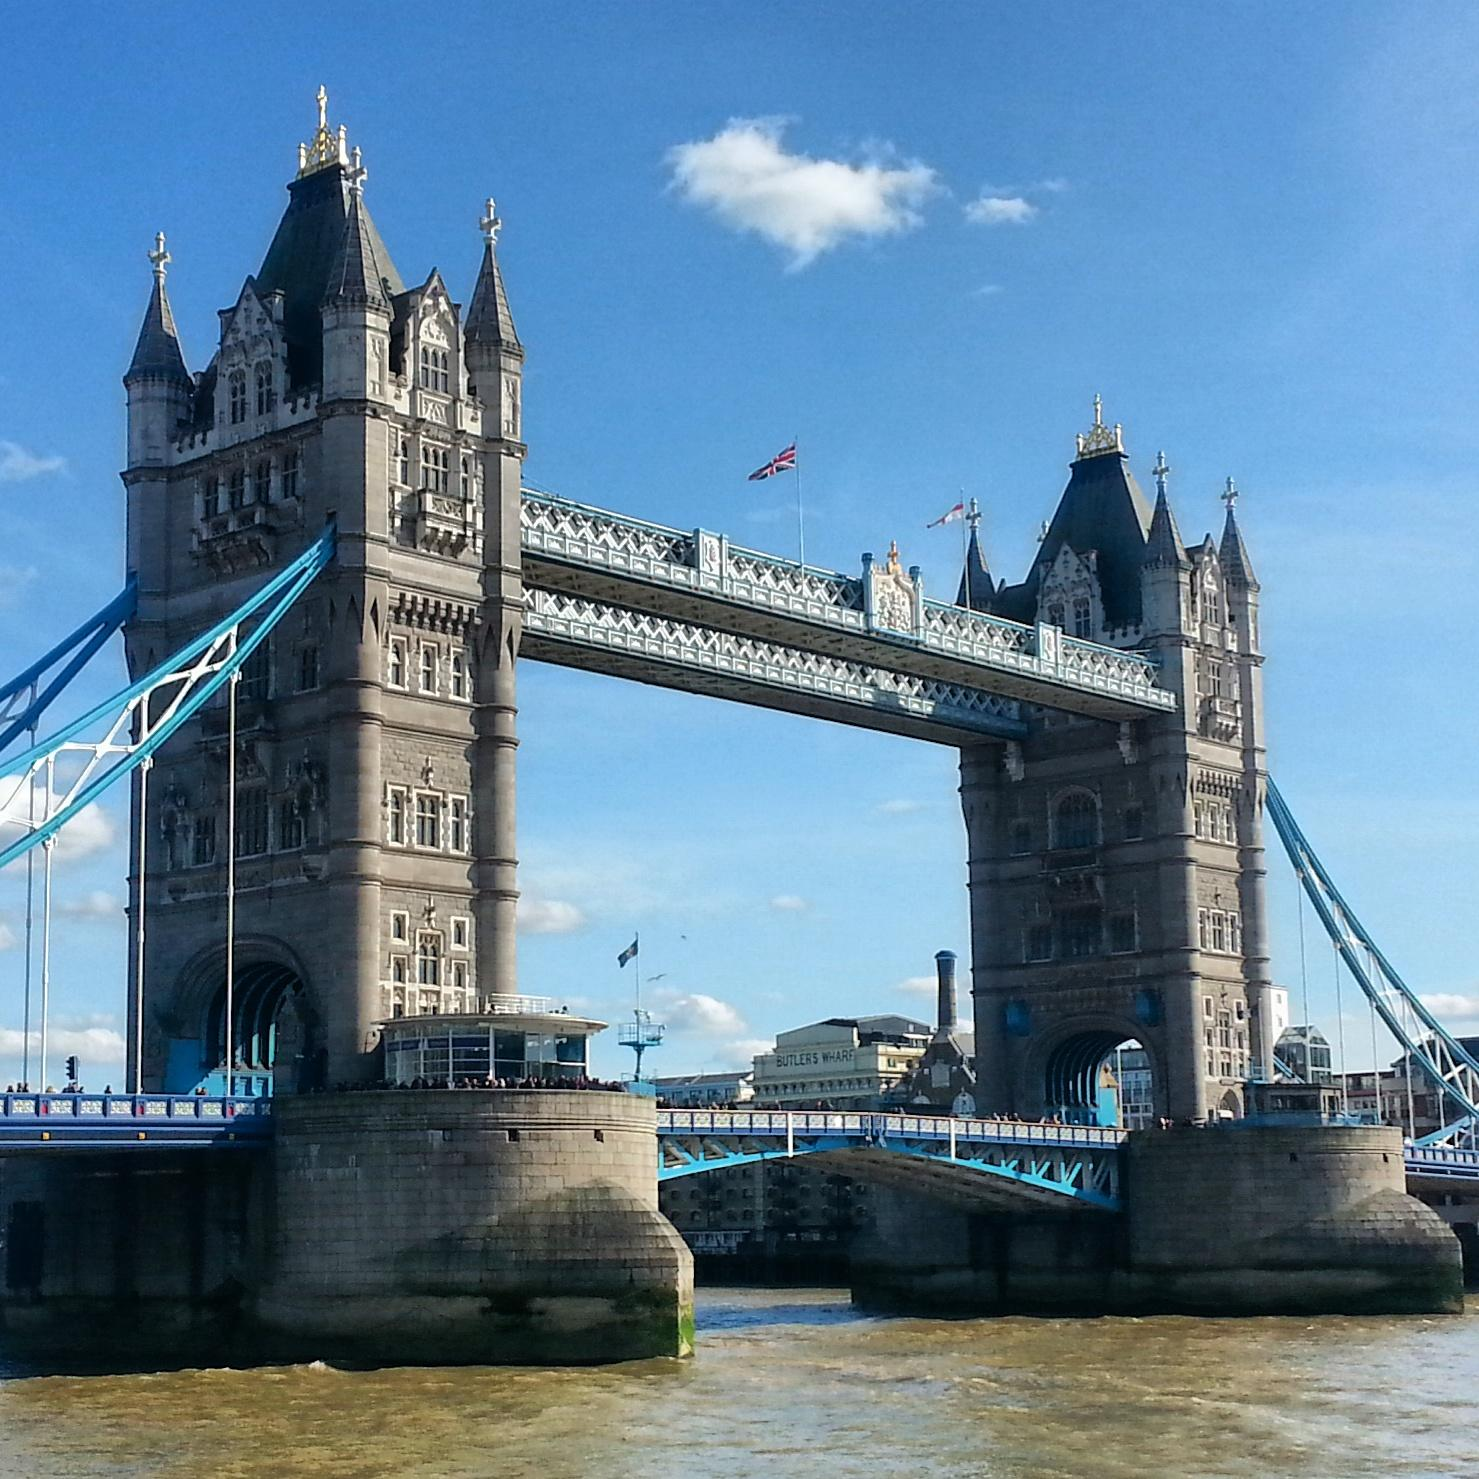 Tower Bridge | Tickets, opening times and general info – Time Out